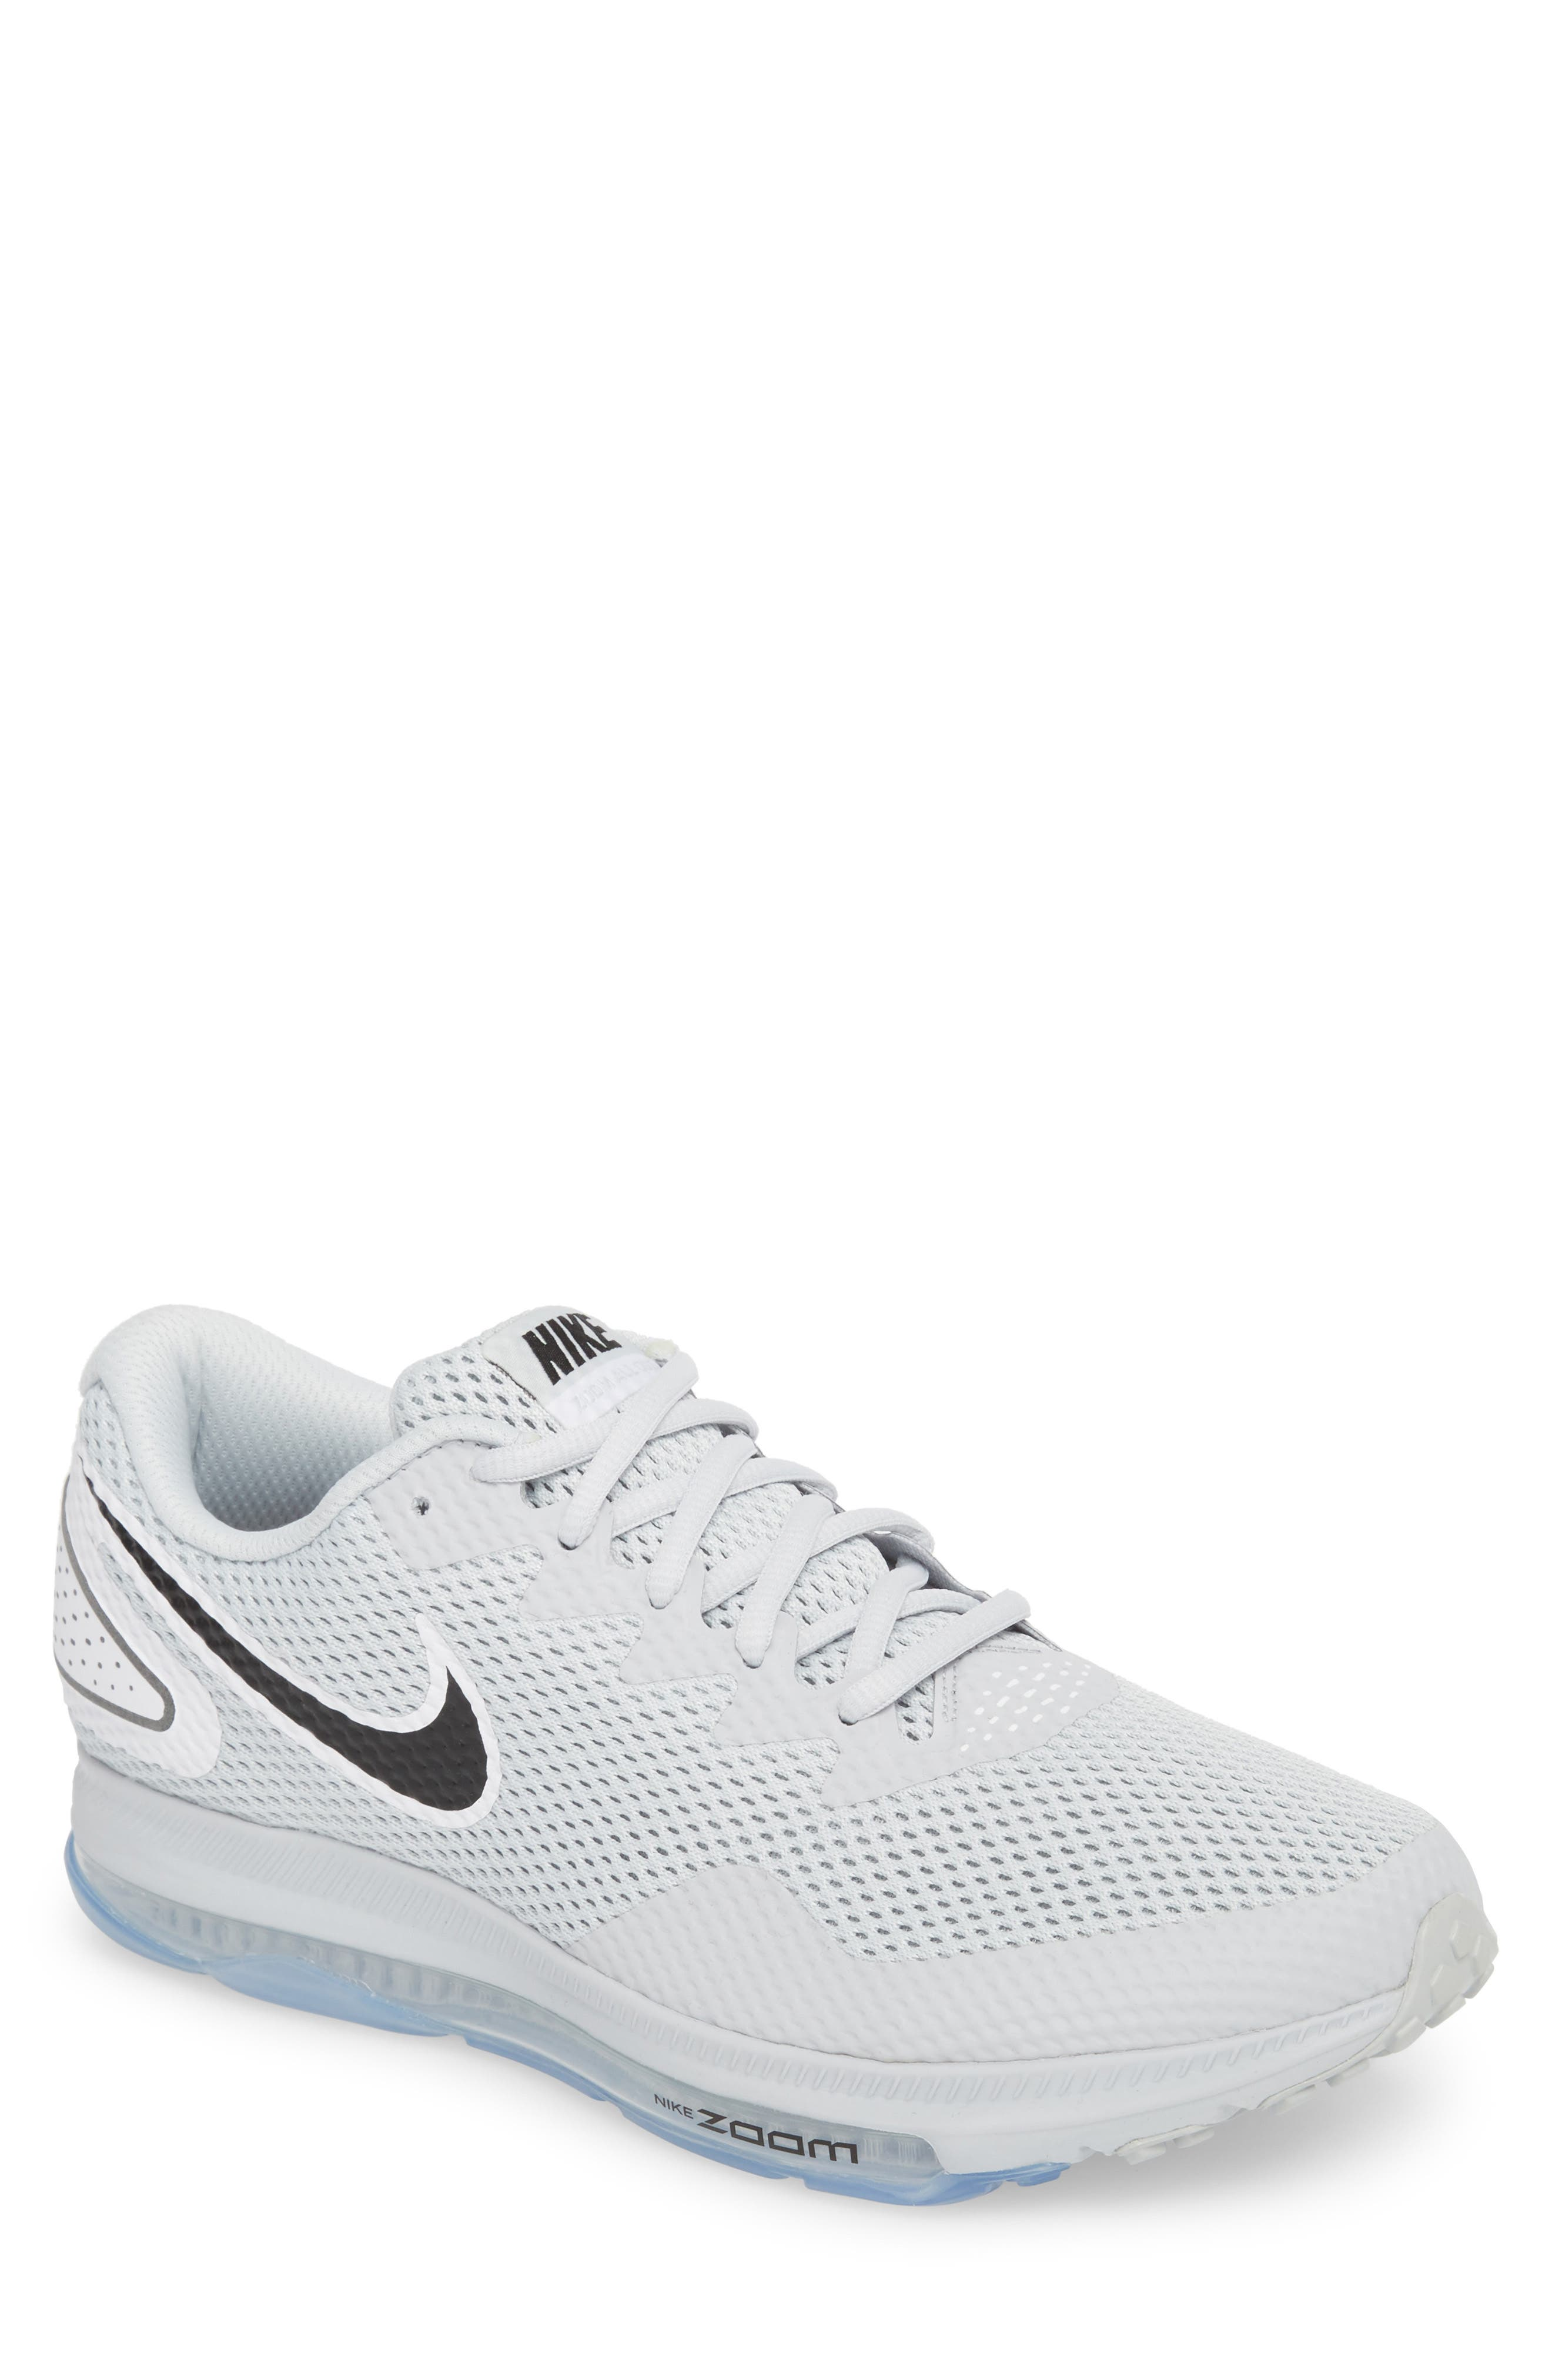 Zoom All Out Low 2 Running Shoe,                             Main thumbnail 1, color,                             Pure Platinum/ Black/ White